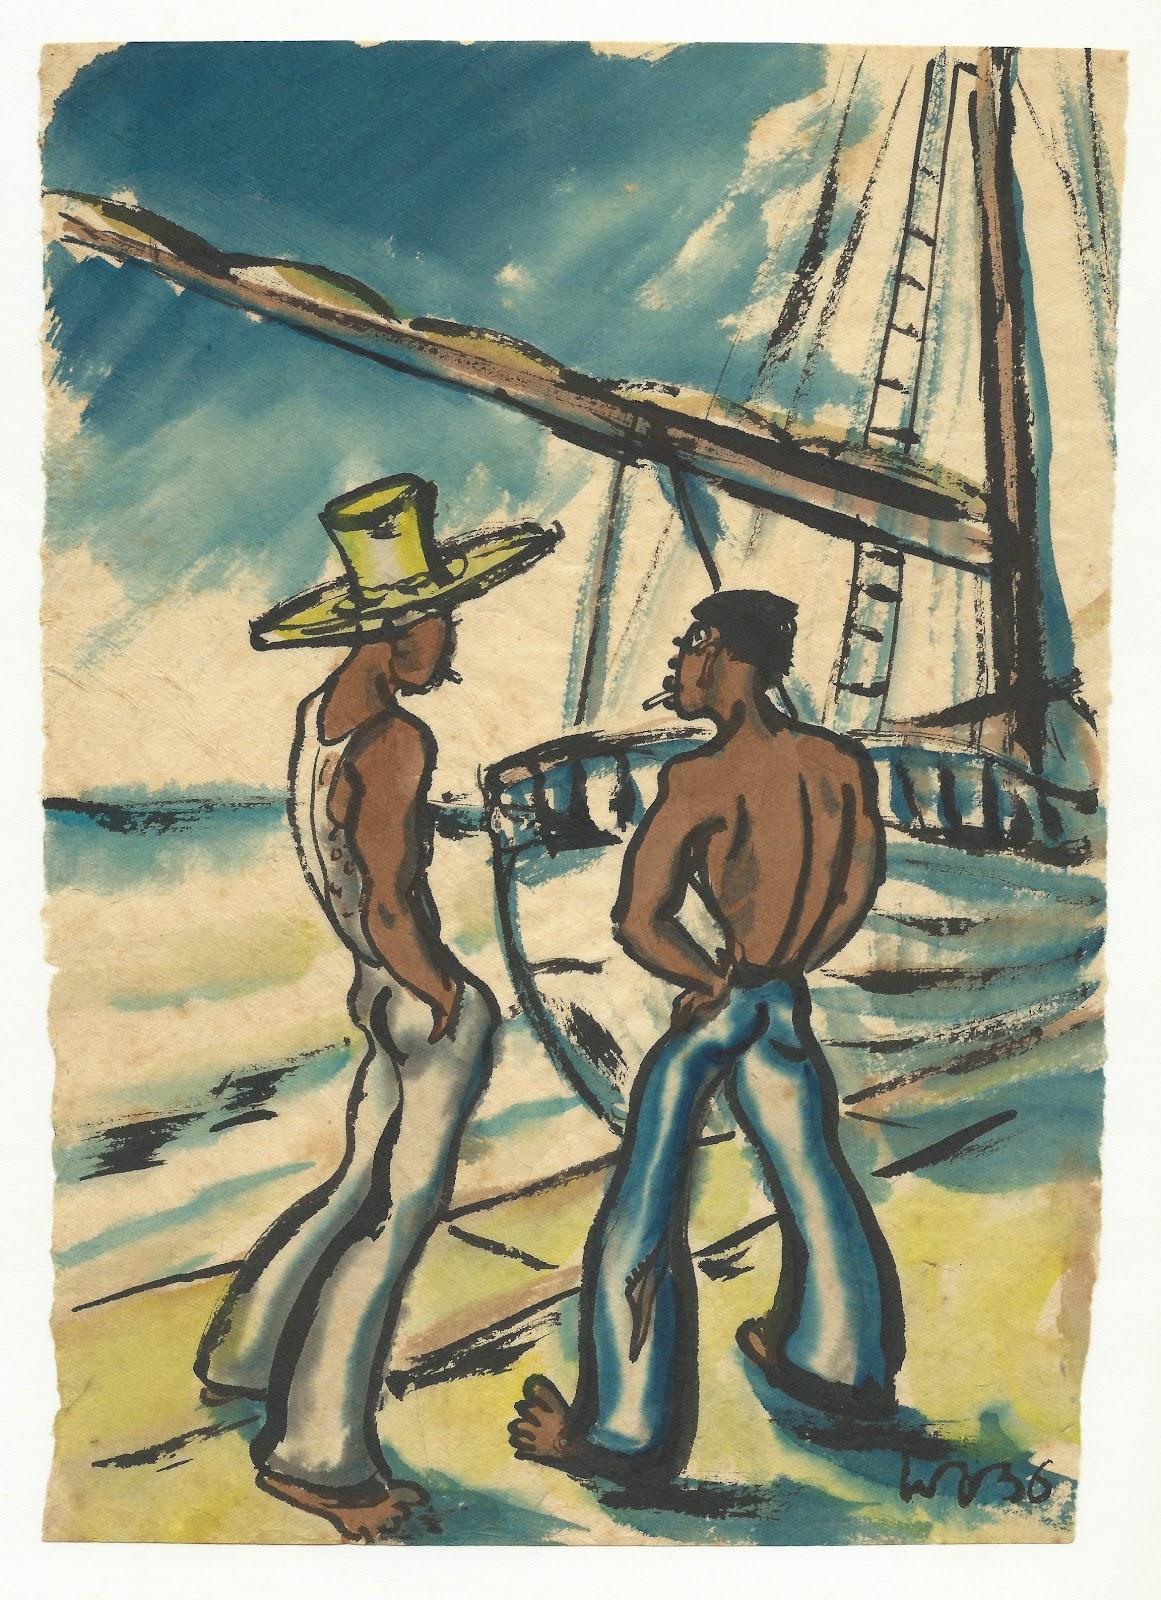 Two sailors, watercolor on paper, 1936, family-owned